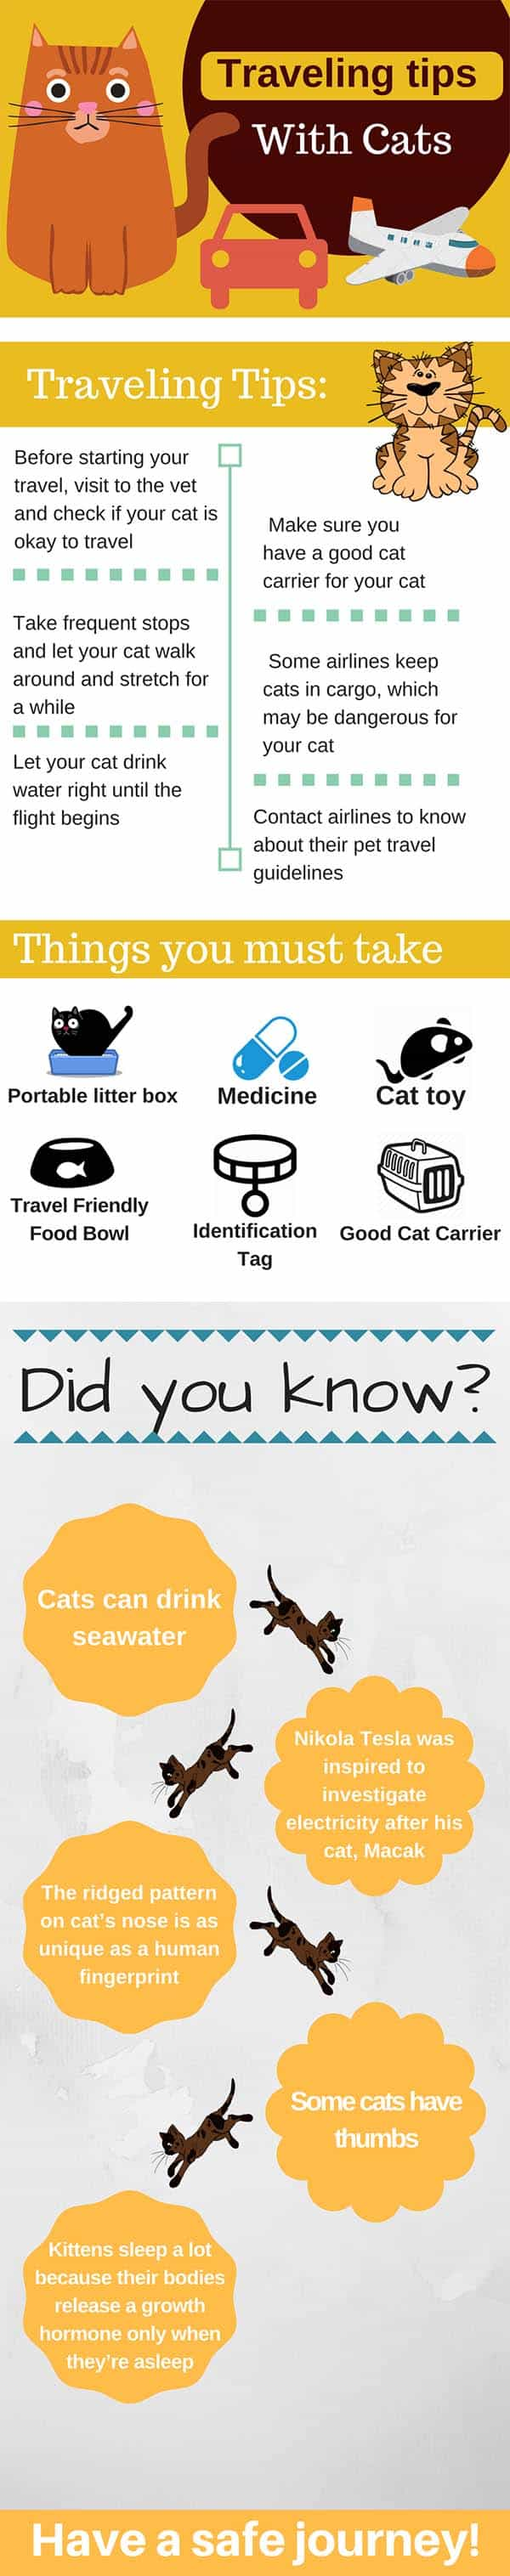 how to travel with a cat infographic